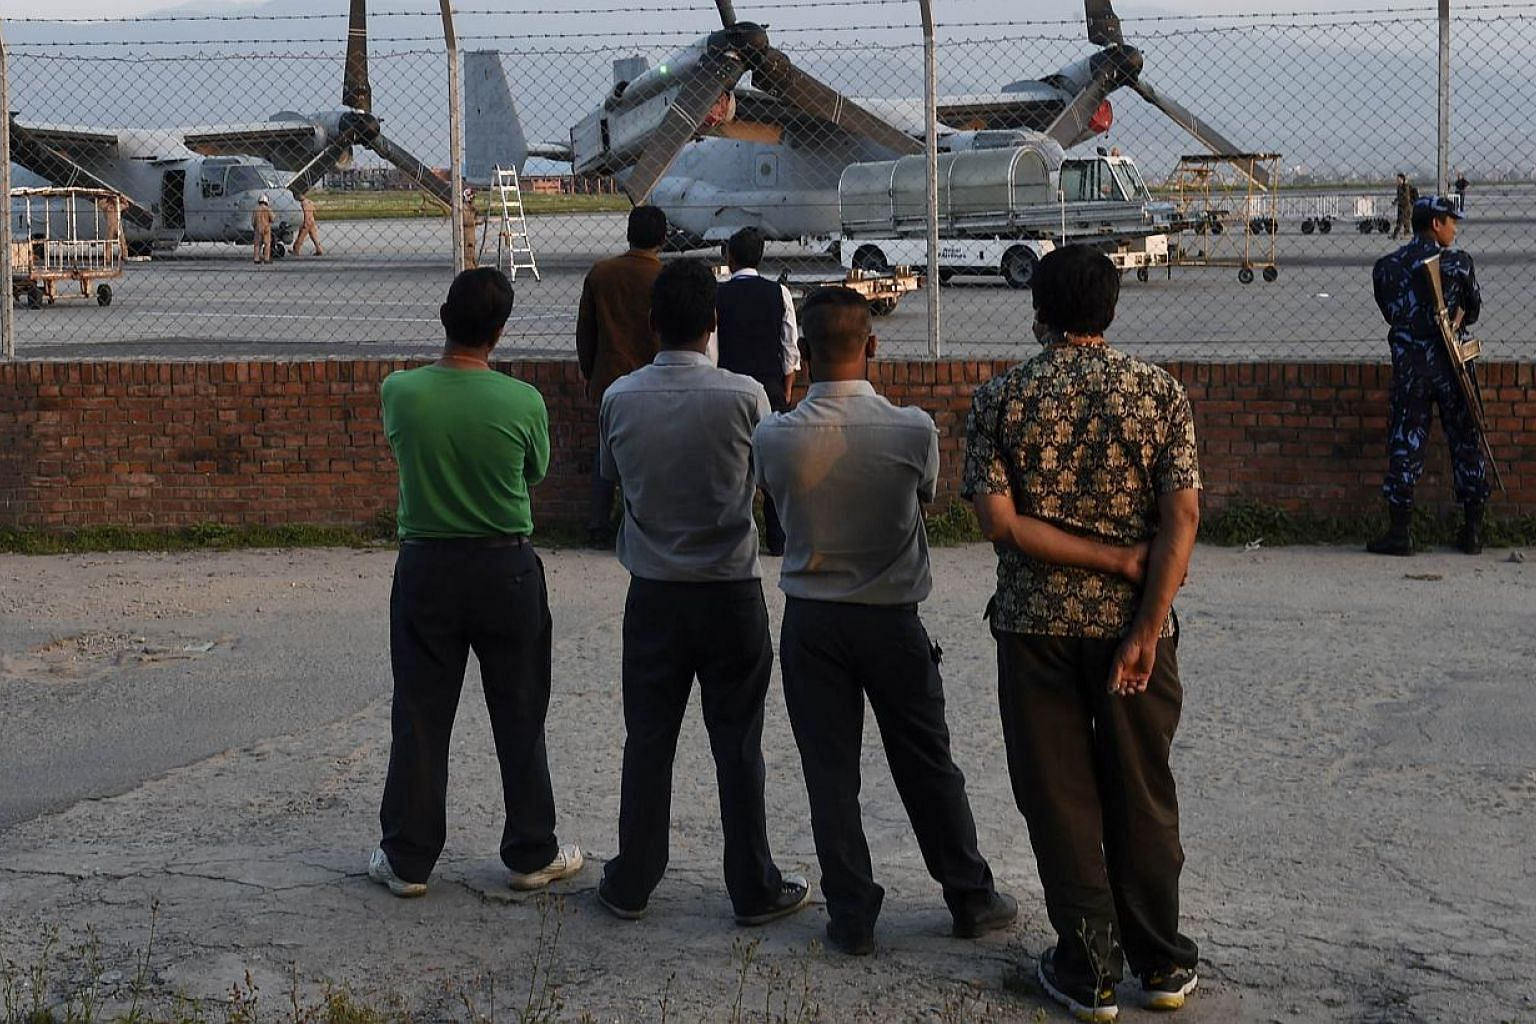 Nepalese men watching US military Osprey aircraft after they landed at Kathmandu's international airport on May 3, 2015. Nepalese authorities ordered the closure of Kathmandu airport on Tuesday after a new earthquake killed at least four people and s